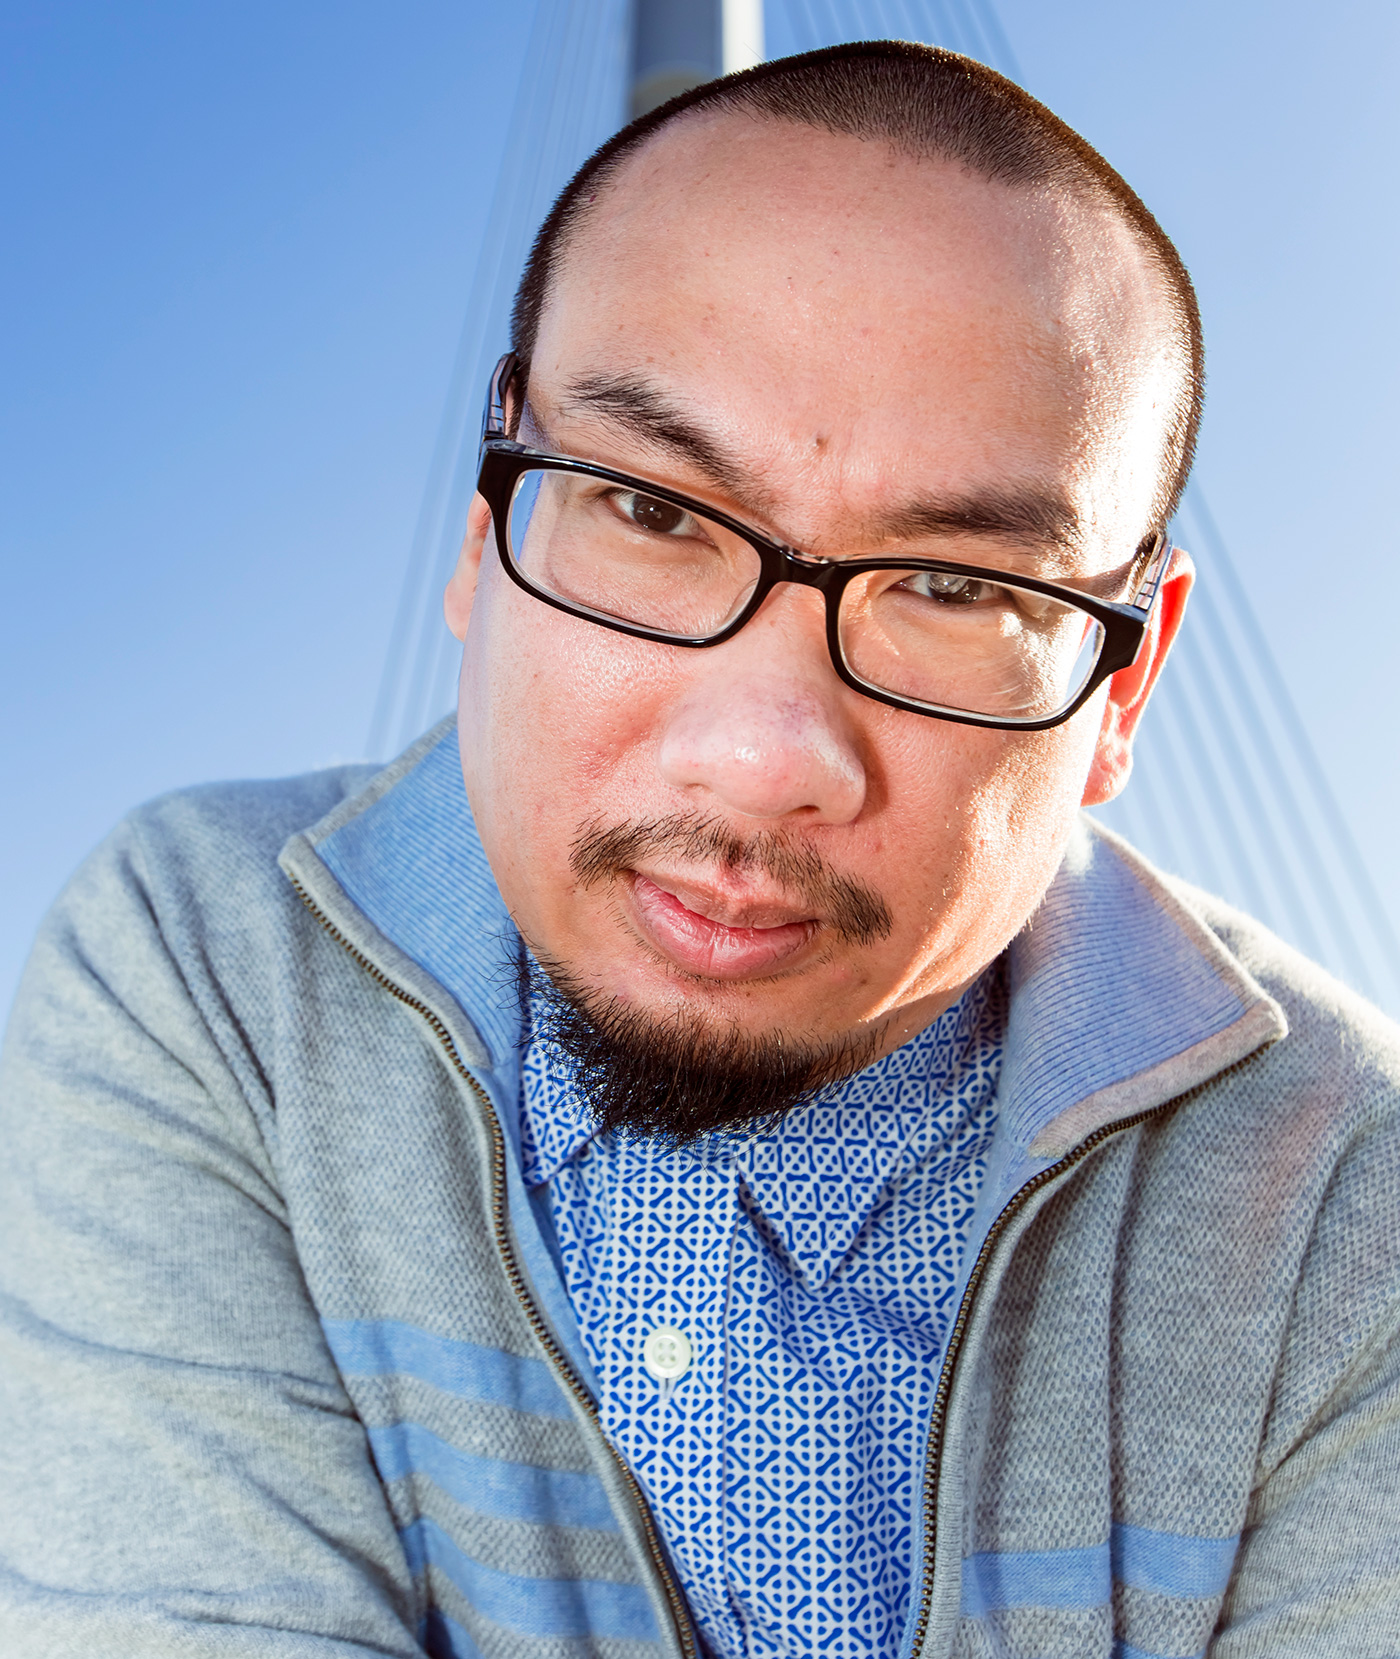 Bao Phi is a two-time Minnesota Grand Slam champion and a National Poetry Slam finalist, who has appeared on HBO Presents Russell Simmons Def Poetry and was featured in the live performances and taping of the blockbuster diasporic Vietnamese variety show Paris By Night 114: Tôi Là Người Việt Nam.